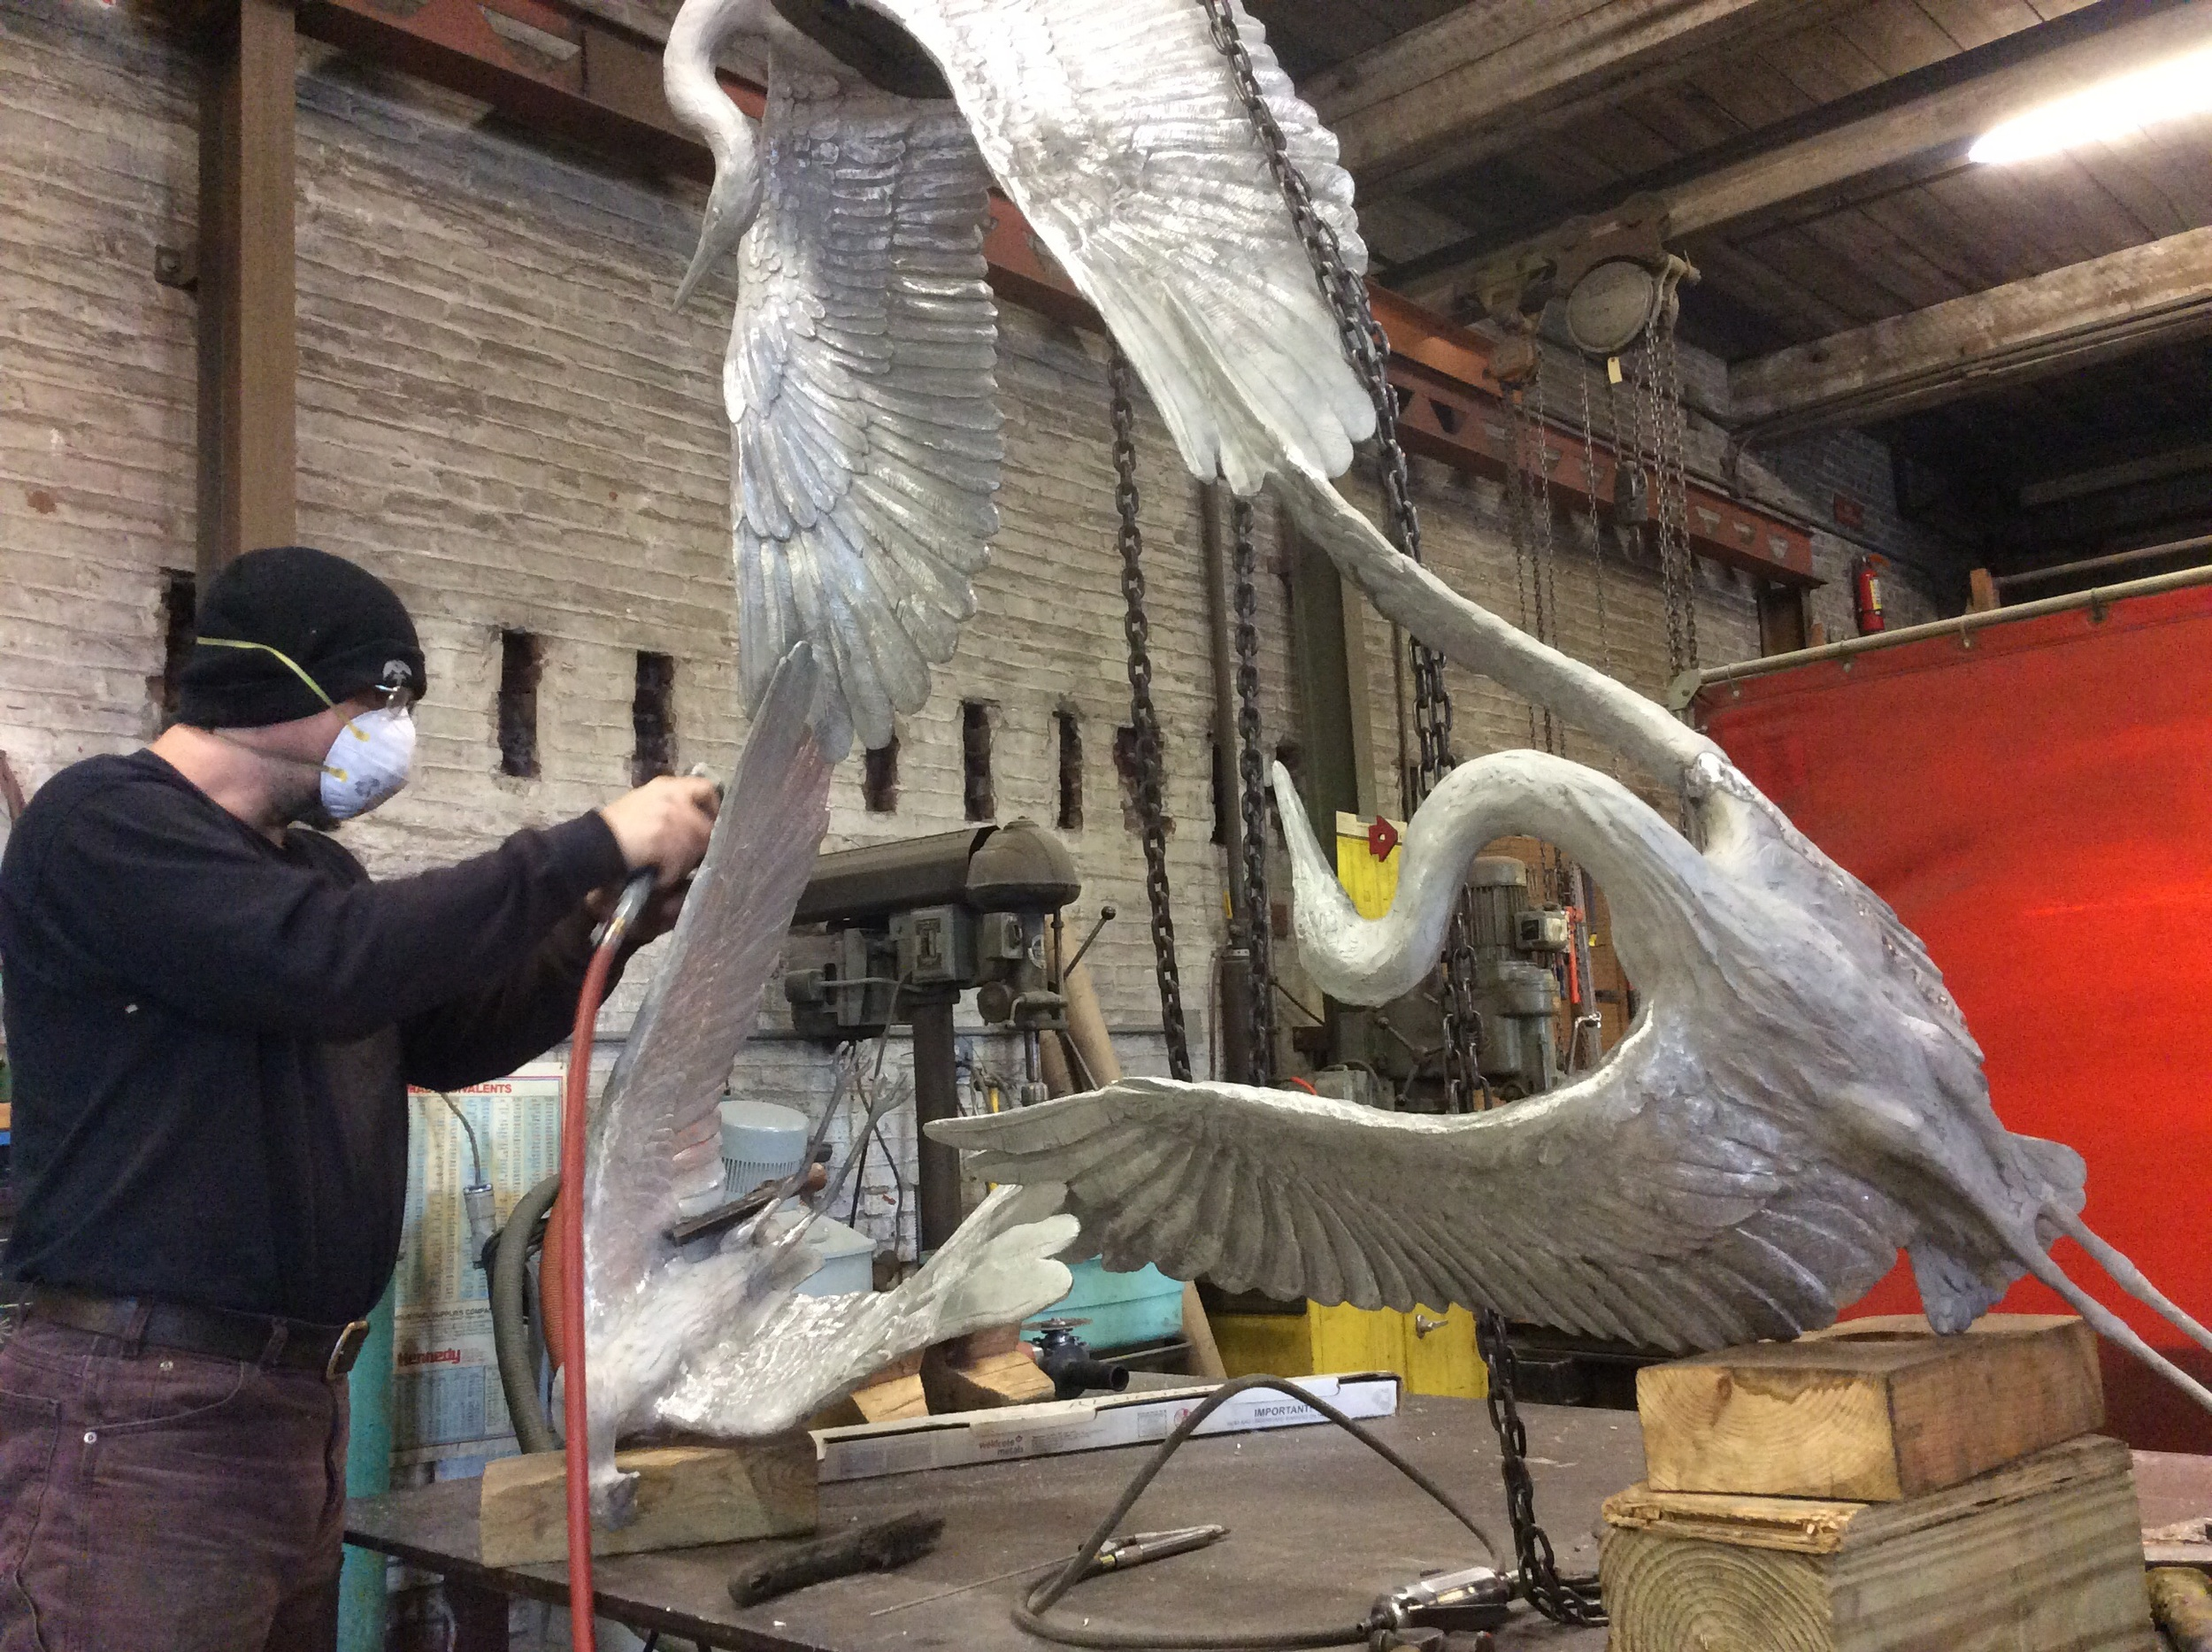 Jason finishes chasing this beautiful sculpture by Johanna Blake. Aluminum is a much lighter metal than bronze and can be very tricky to work. Experience and patience are fundamental.